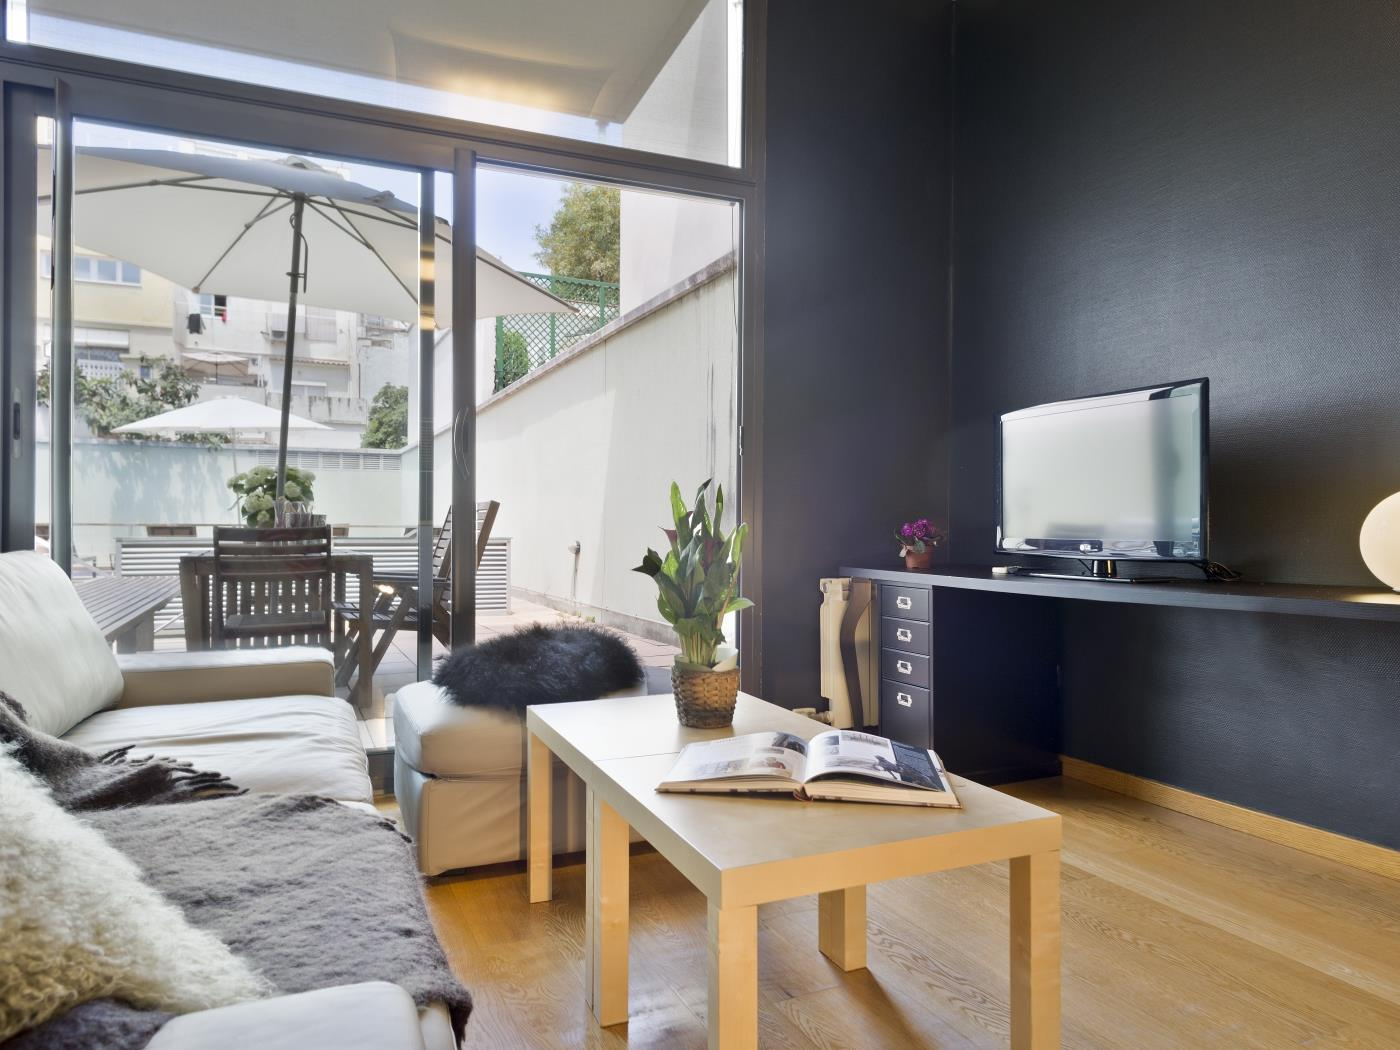 Gracia loft with privatve terrace and shared pool - My Space Barcelona Aпартаменты